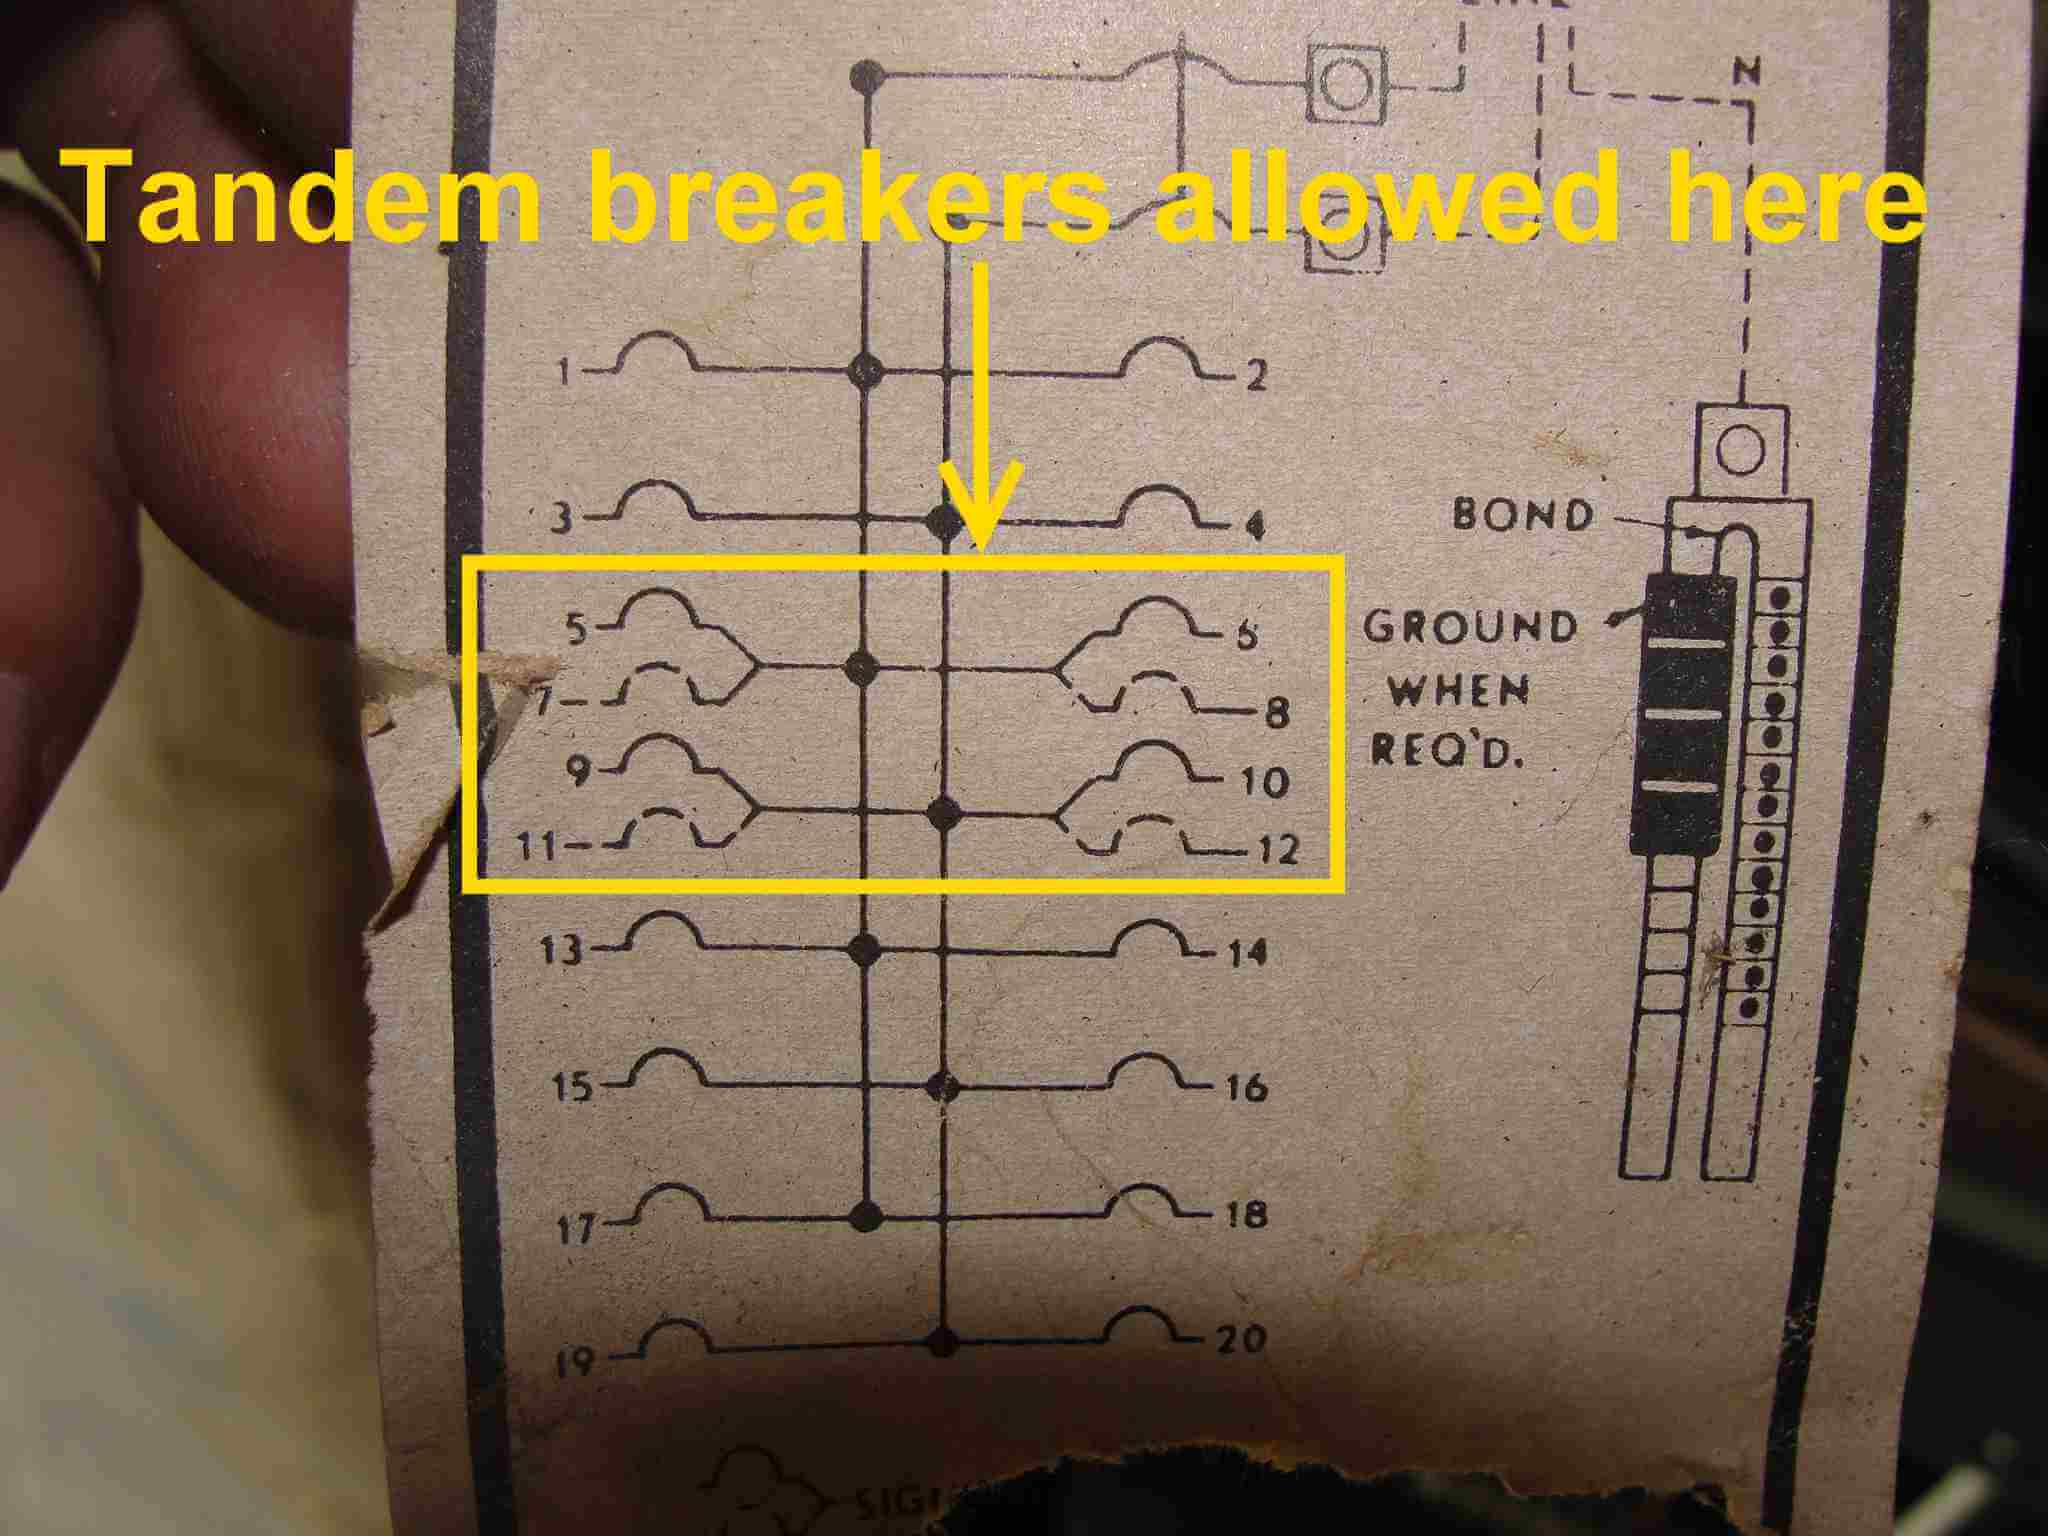 How to know when tandem circuit breakers can be used aka cheater